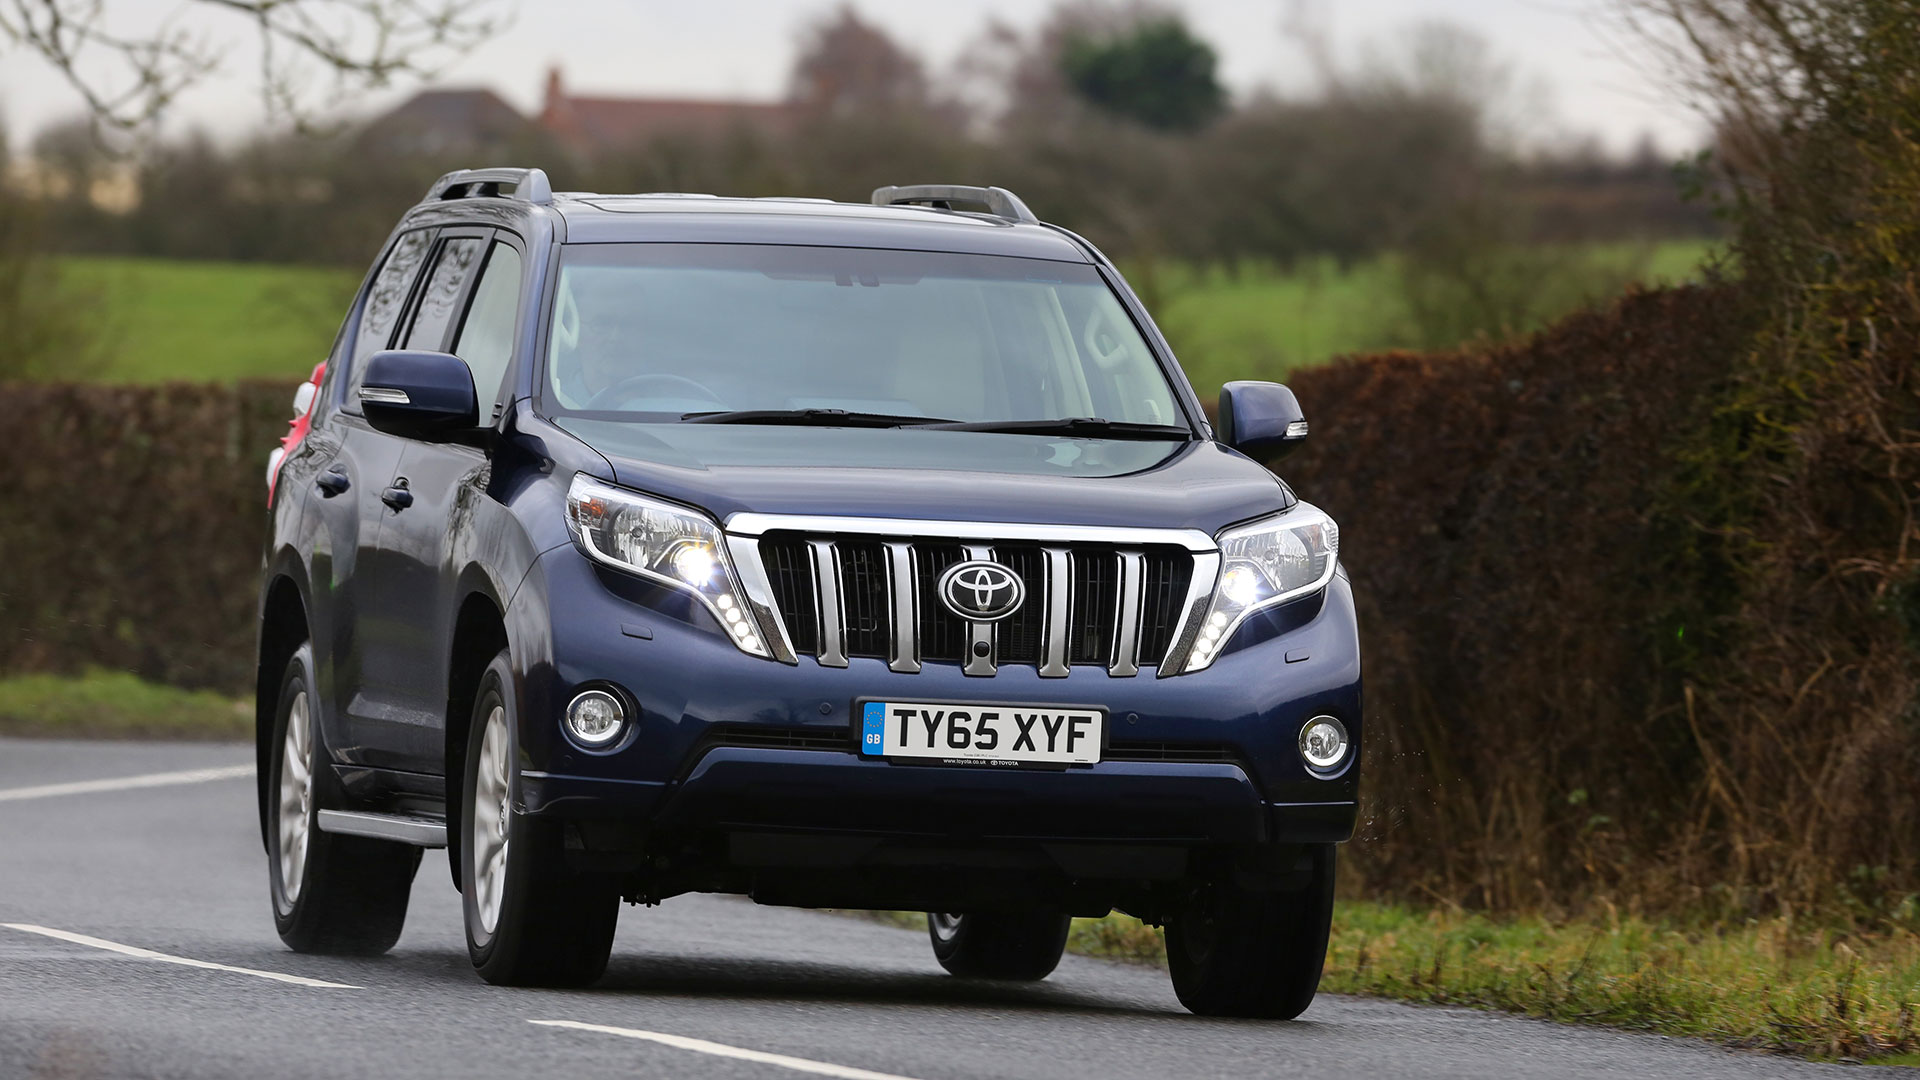 Used Grey Toyota Land Cruiser Cars For Sale On Auto Trader Uk